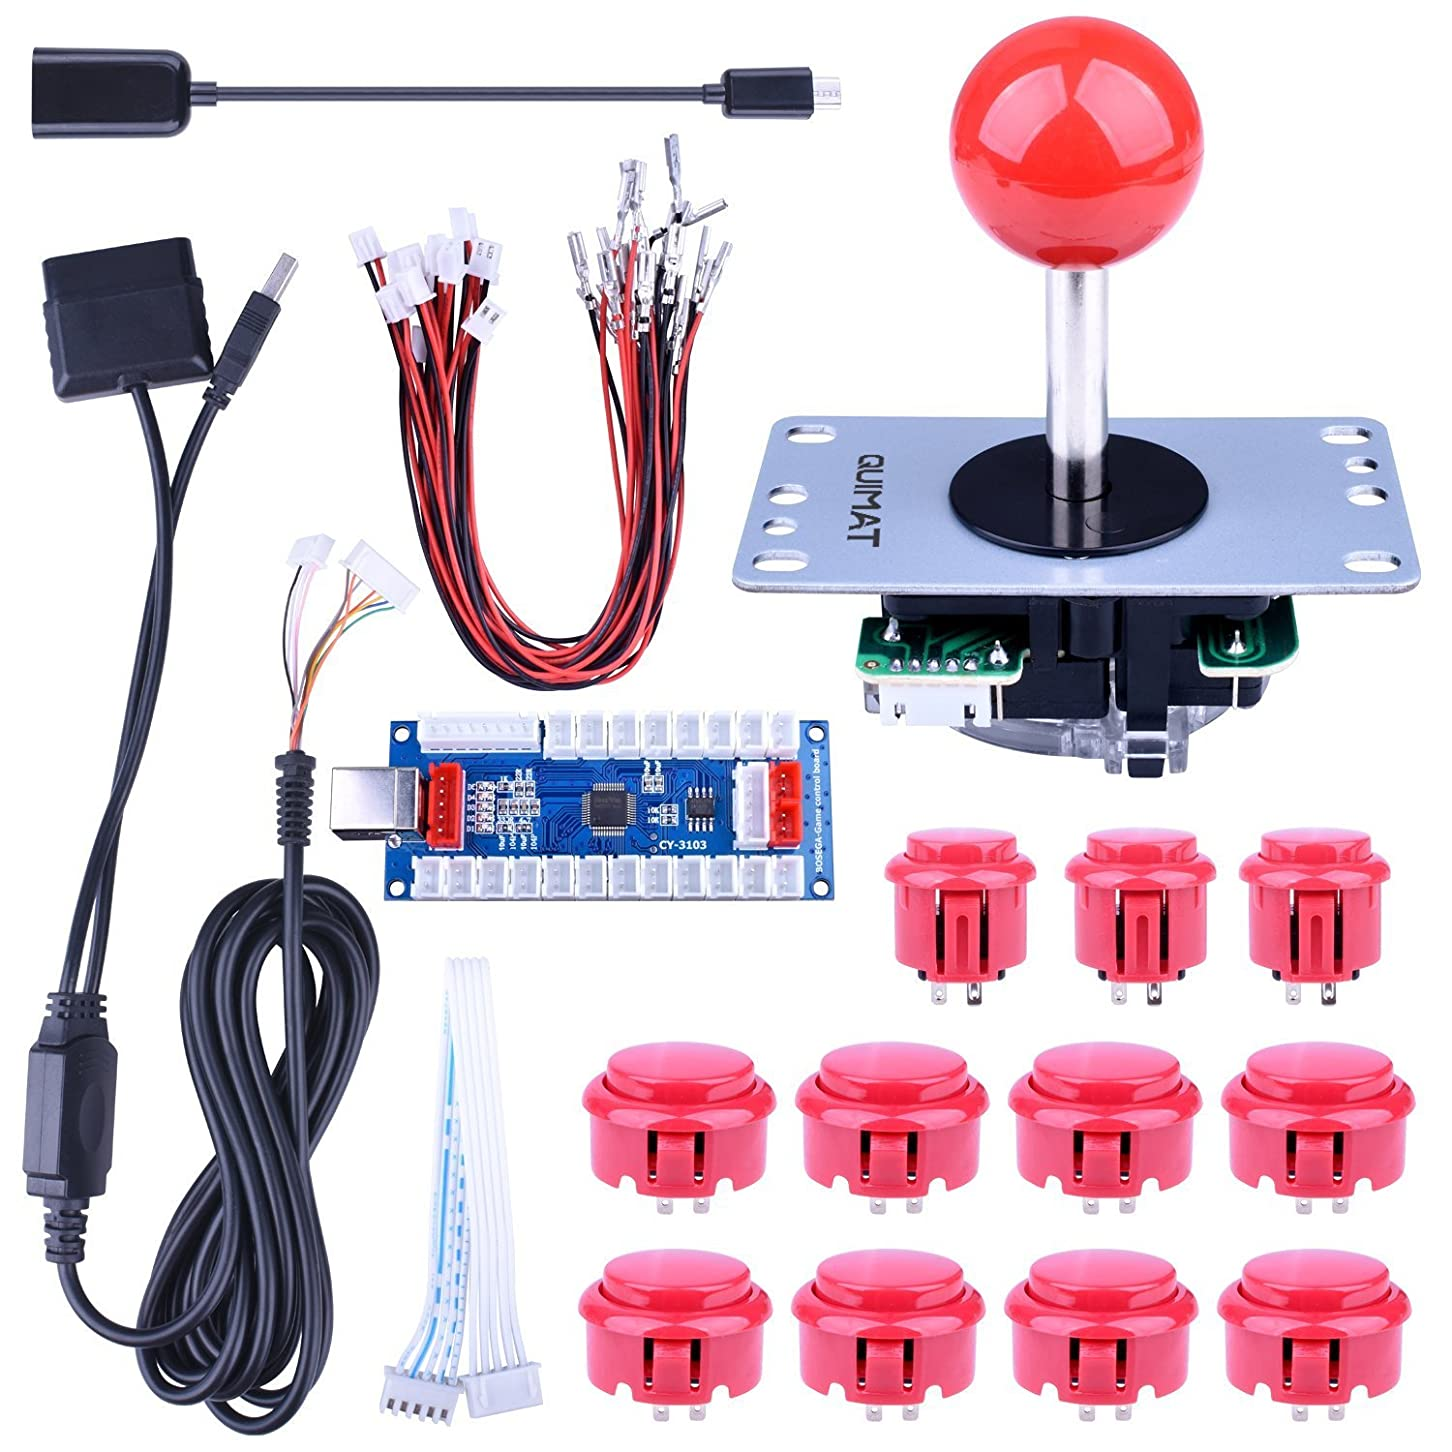 中絶変位マイナーHigh Quality Arcade Game Button and Joysticks Controller DIY Kit Supports Rapsberry Pi, Windows, XBOX, PS3, PS2, Android, Tablet, Mobile Phone and TV Box, 4/8 Way Joystick and 11 Red Push Buttons